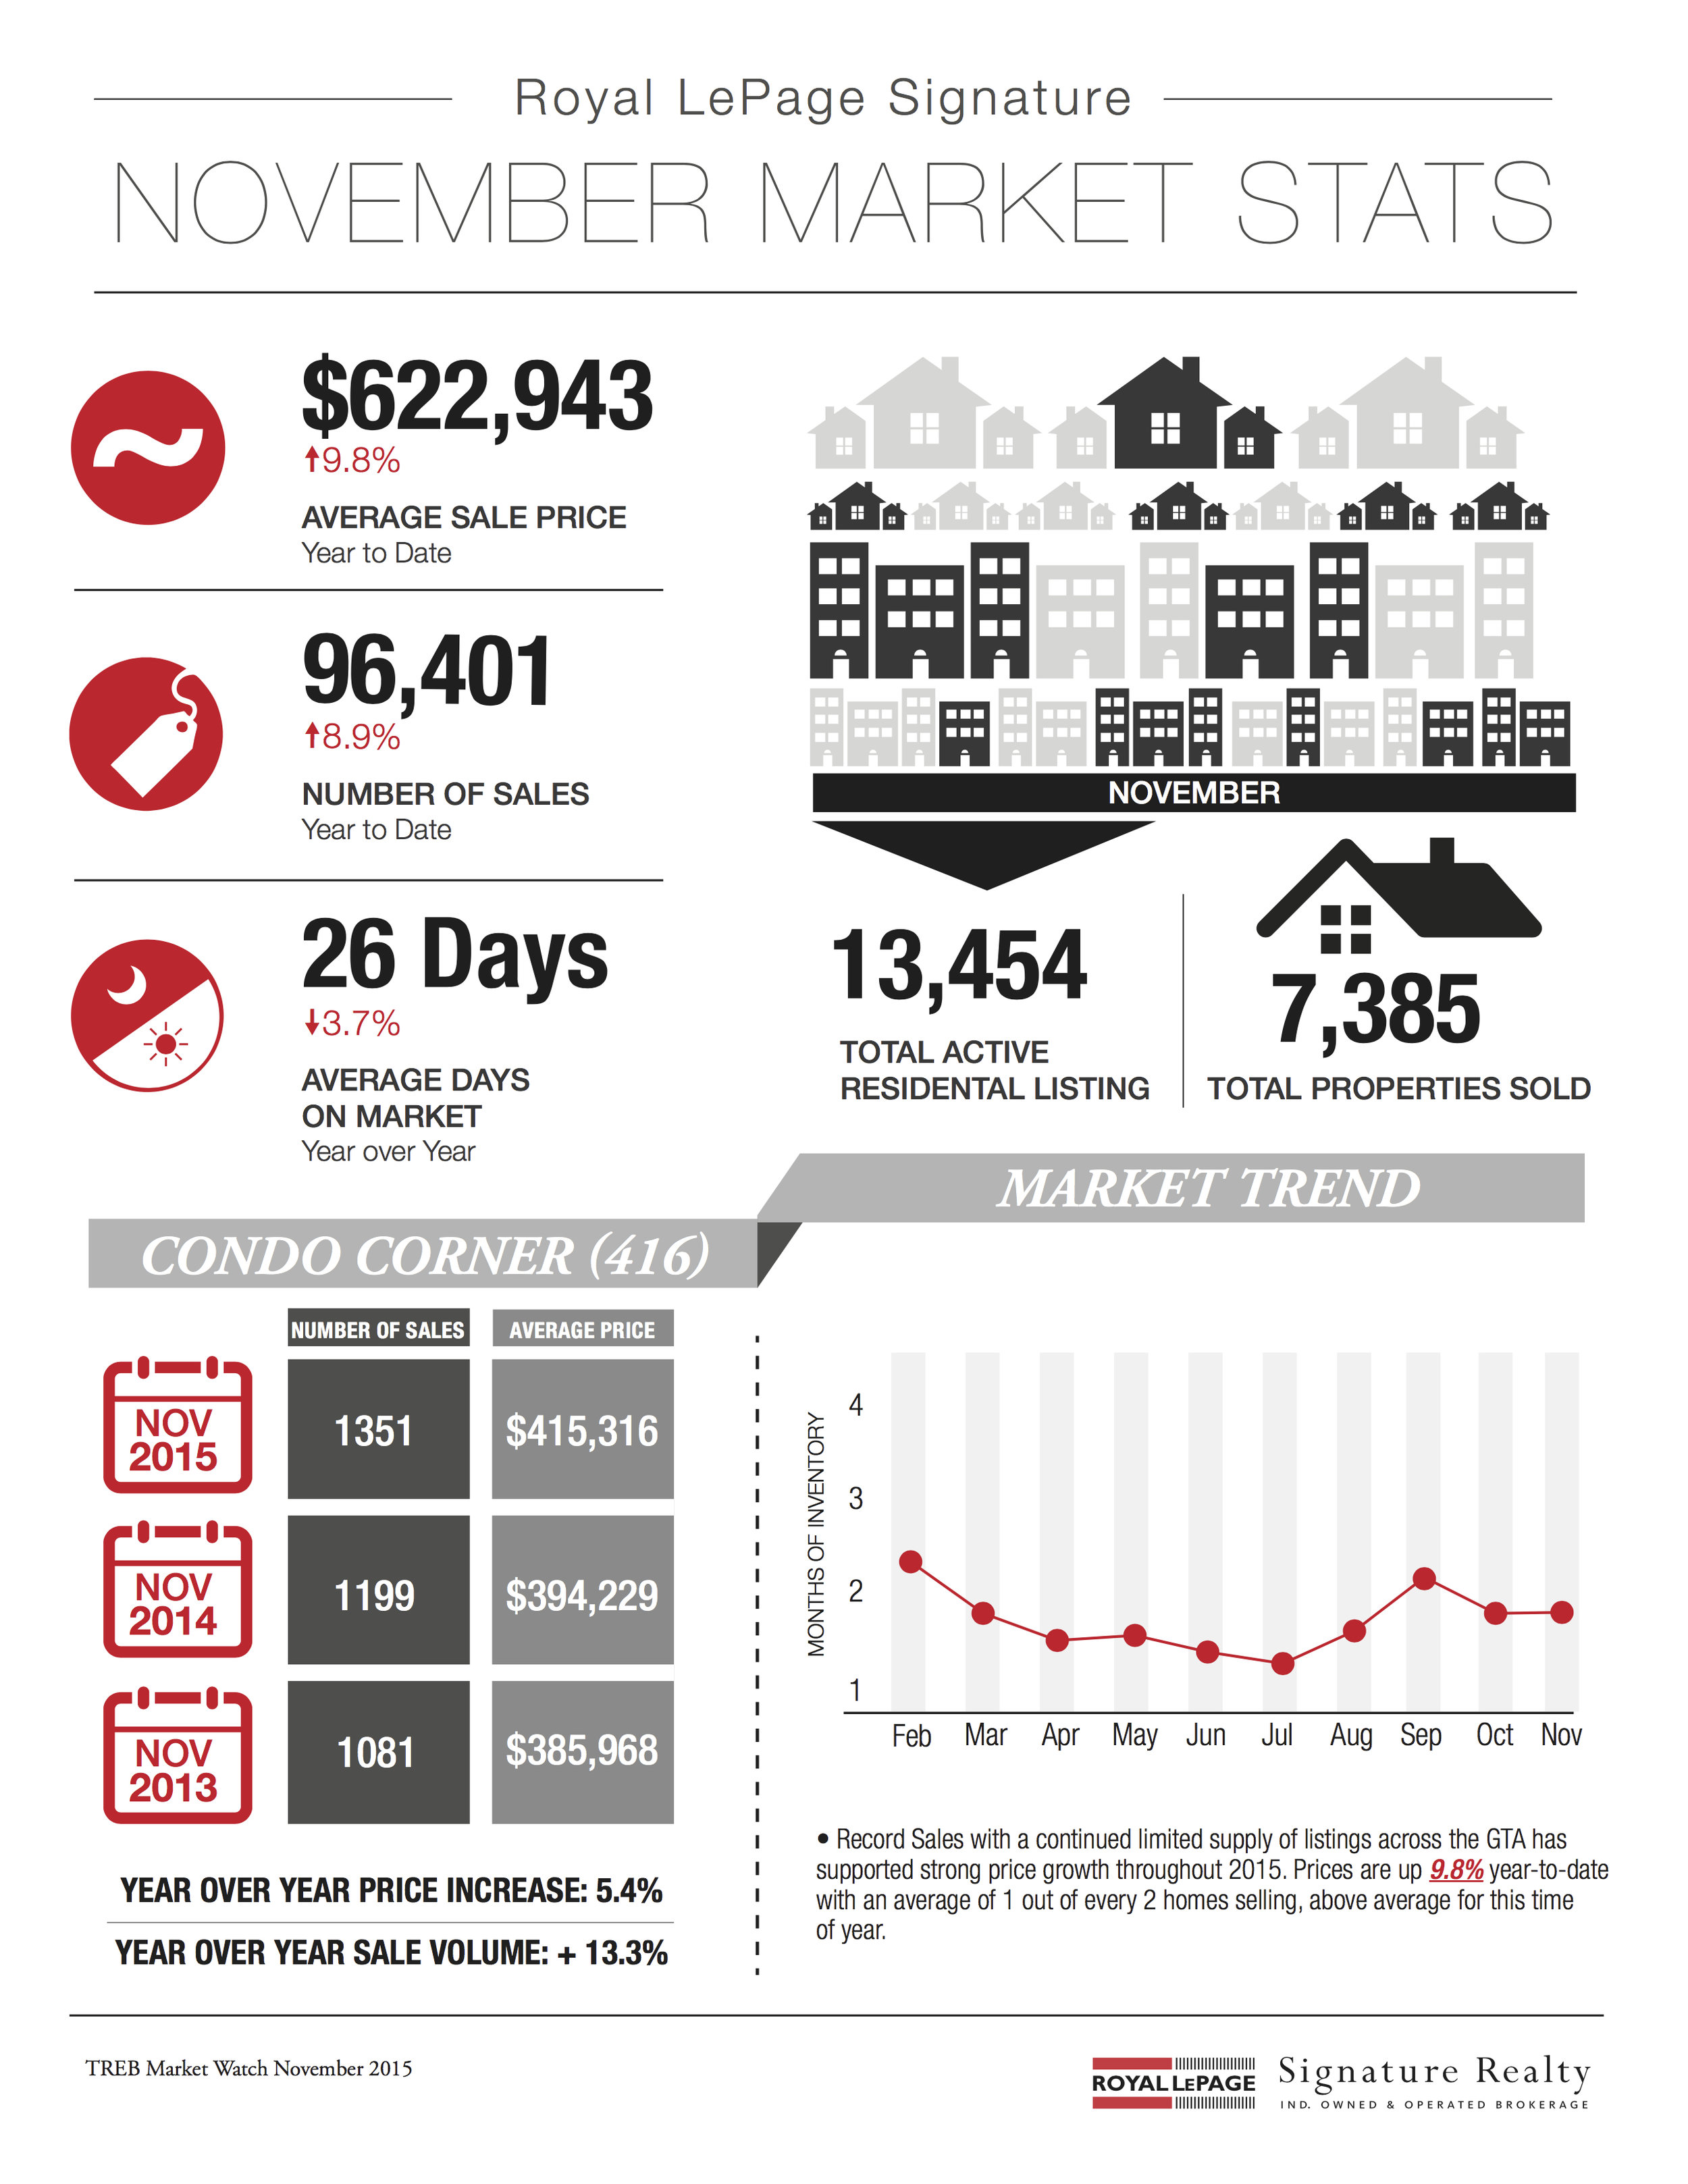 November 2015 Market Stats: Infographic & Report Photo